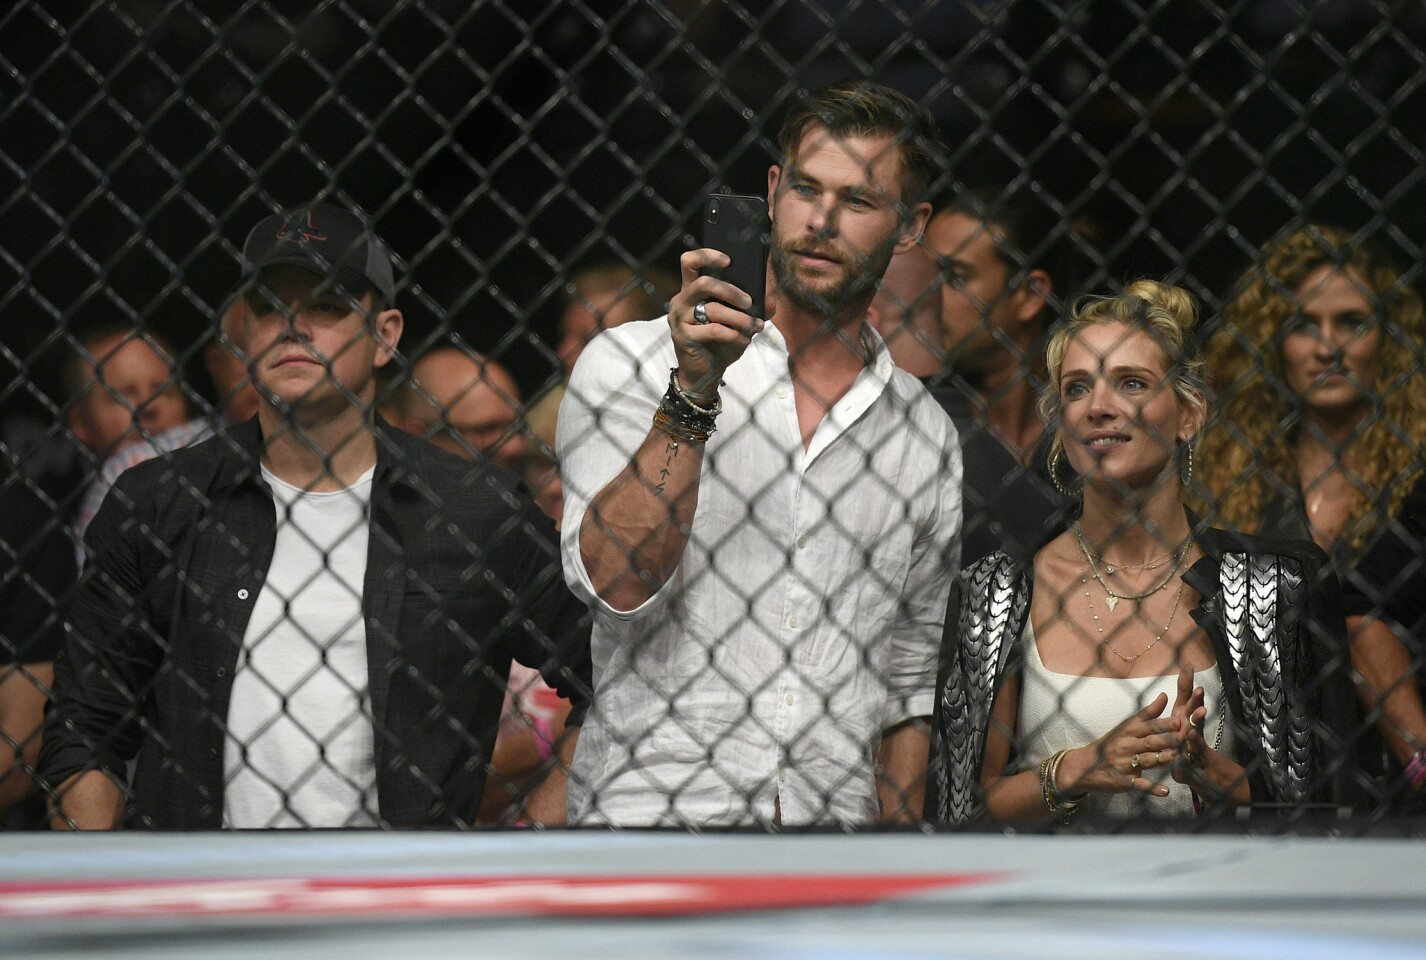 Actors, Matt Damon, left, Chris Hemsworth, center, and his wife Elsa Pataky watch Nigeria's Israel Adesanya and Brazil's Anderson Silva during their middleweight bout at the UFC 234 event in Melbourne, Australia, Sunday, Feb. 10, 2019. (AP Photo/Andy Brownbill)